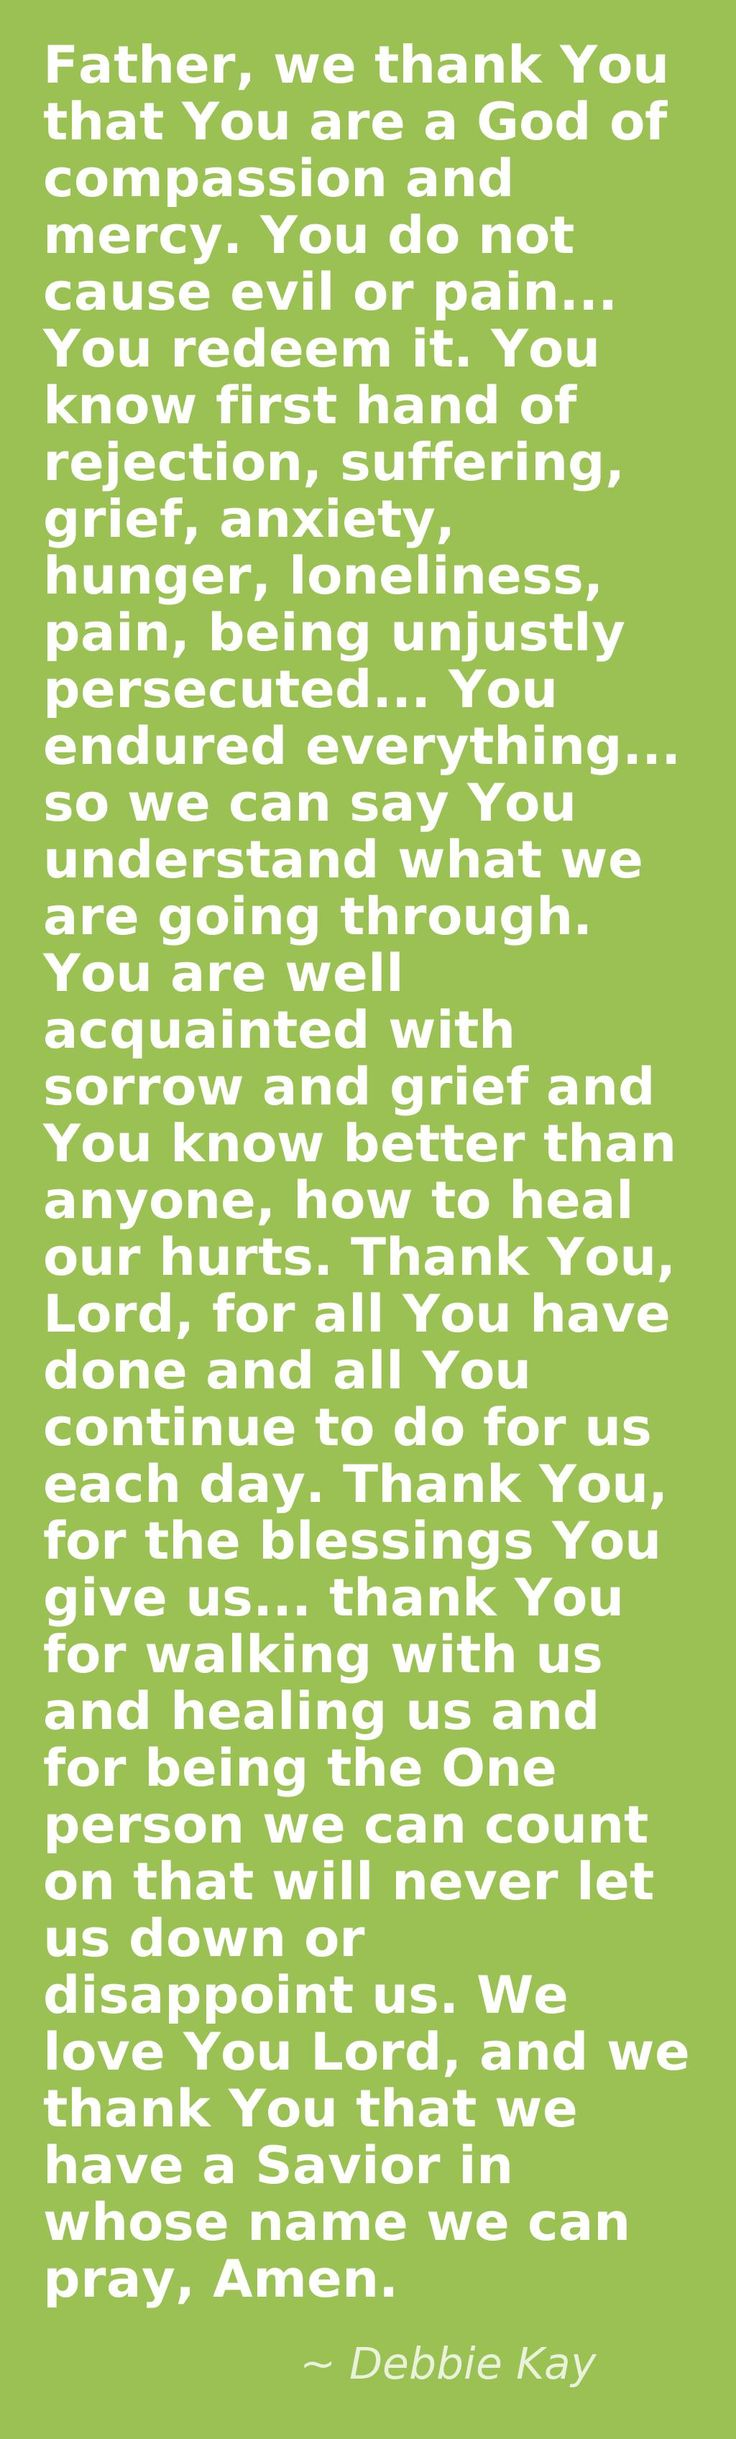 prayer to overcome loneliness, rejection, anxiety. prayer for healing.